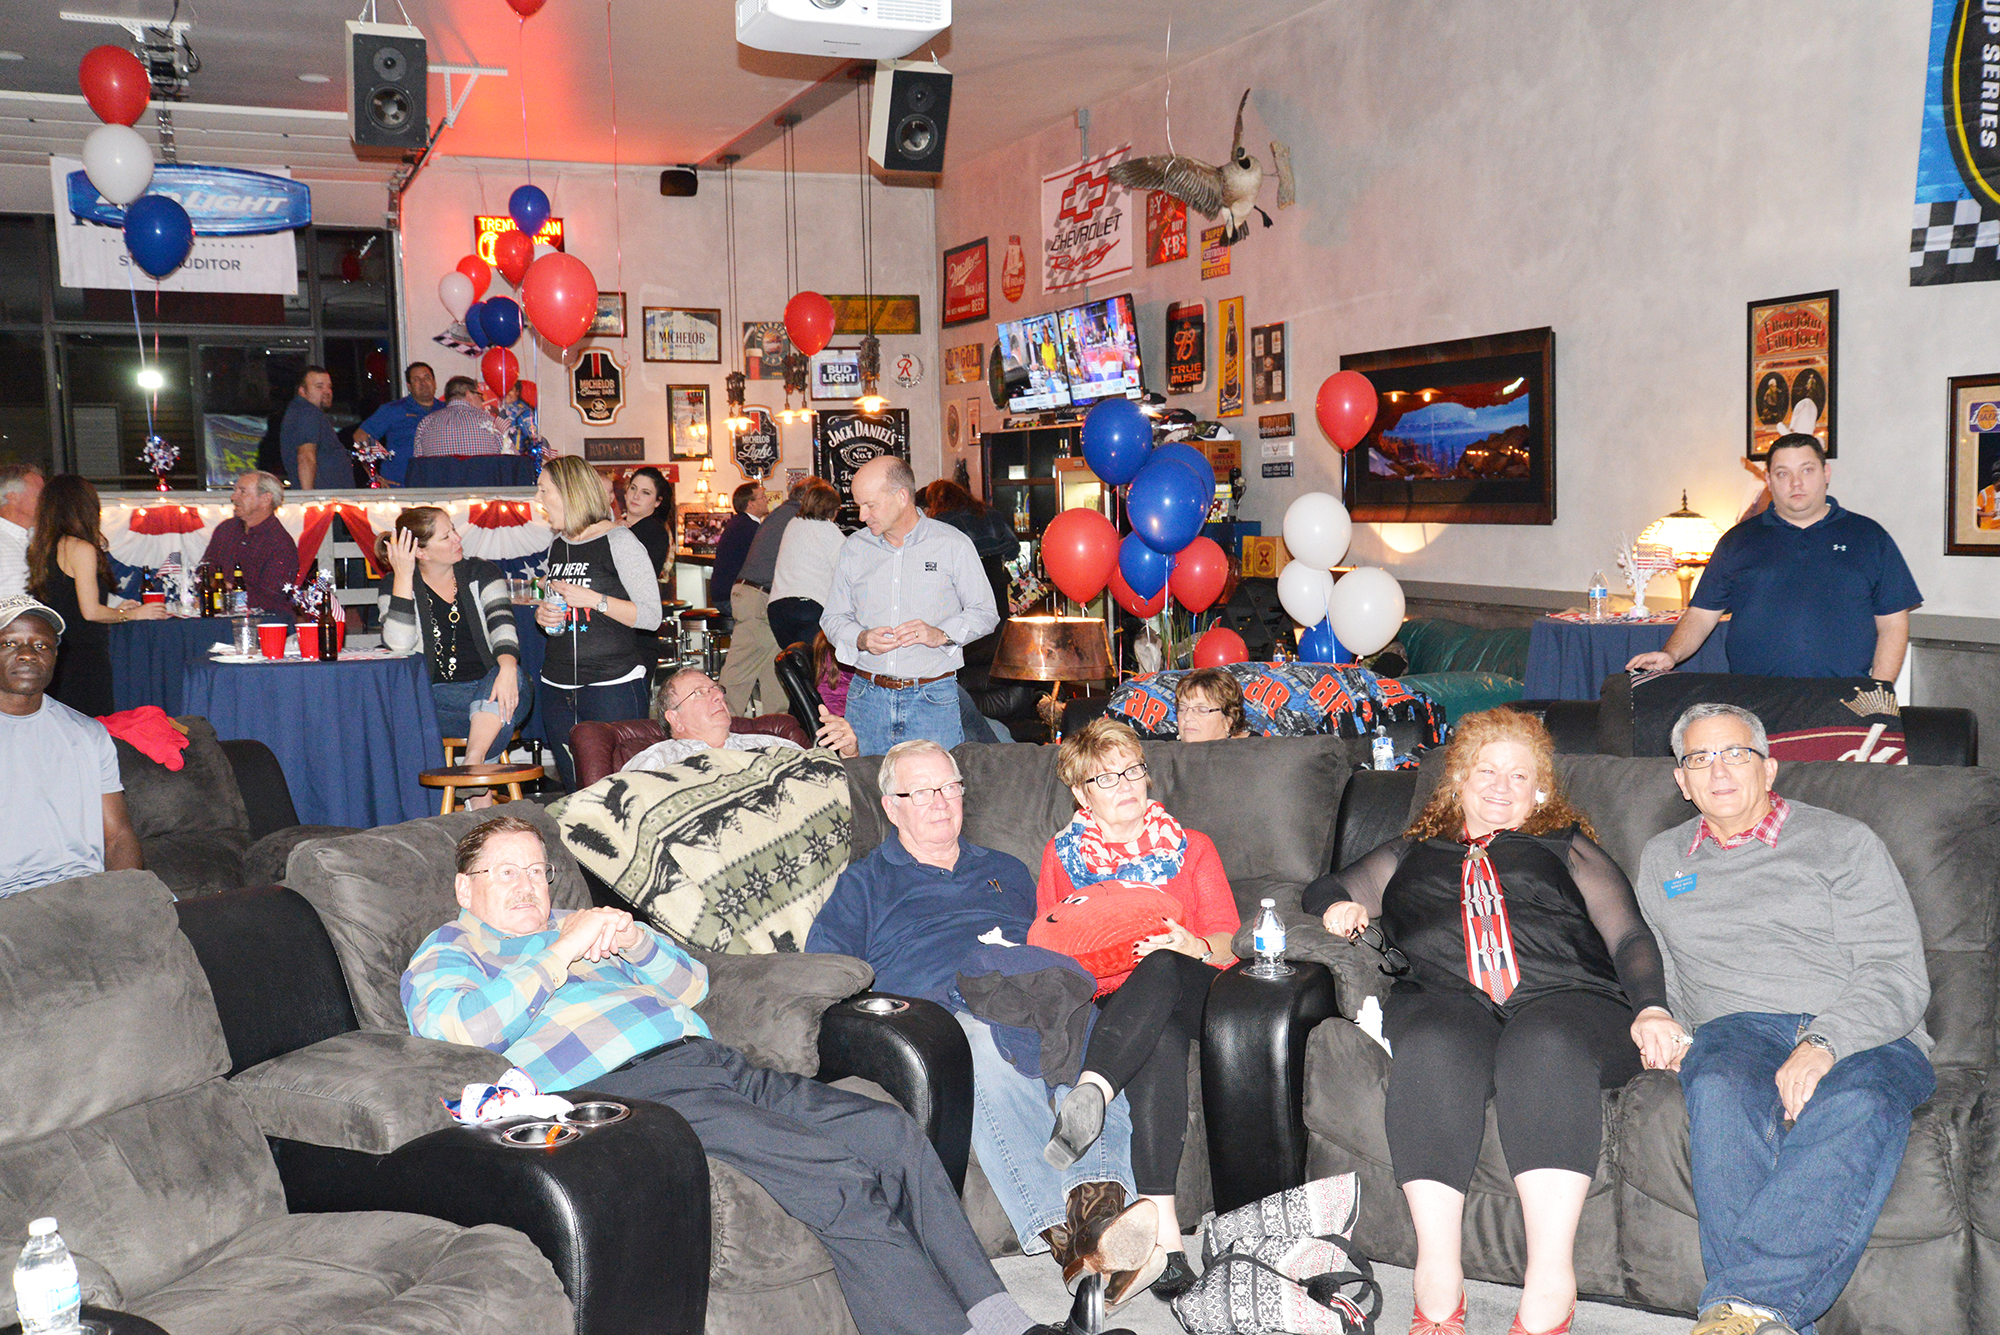 GOP candidates and fans watched returns from Tuesday's general election at Lone Wolf Energy in Billings. Billings residents, supporters and candidates watch national and local election results late swing state results come in before Donald Trump's victory speech. (Jonathan McNiven Photo)